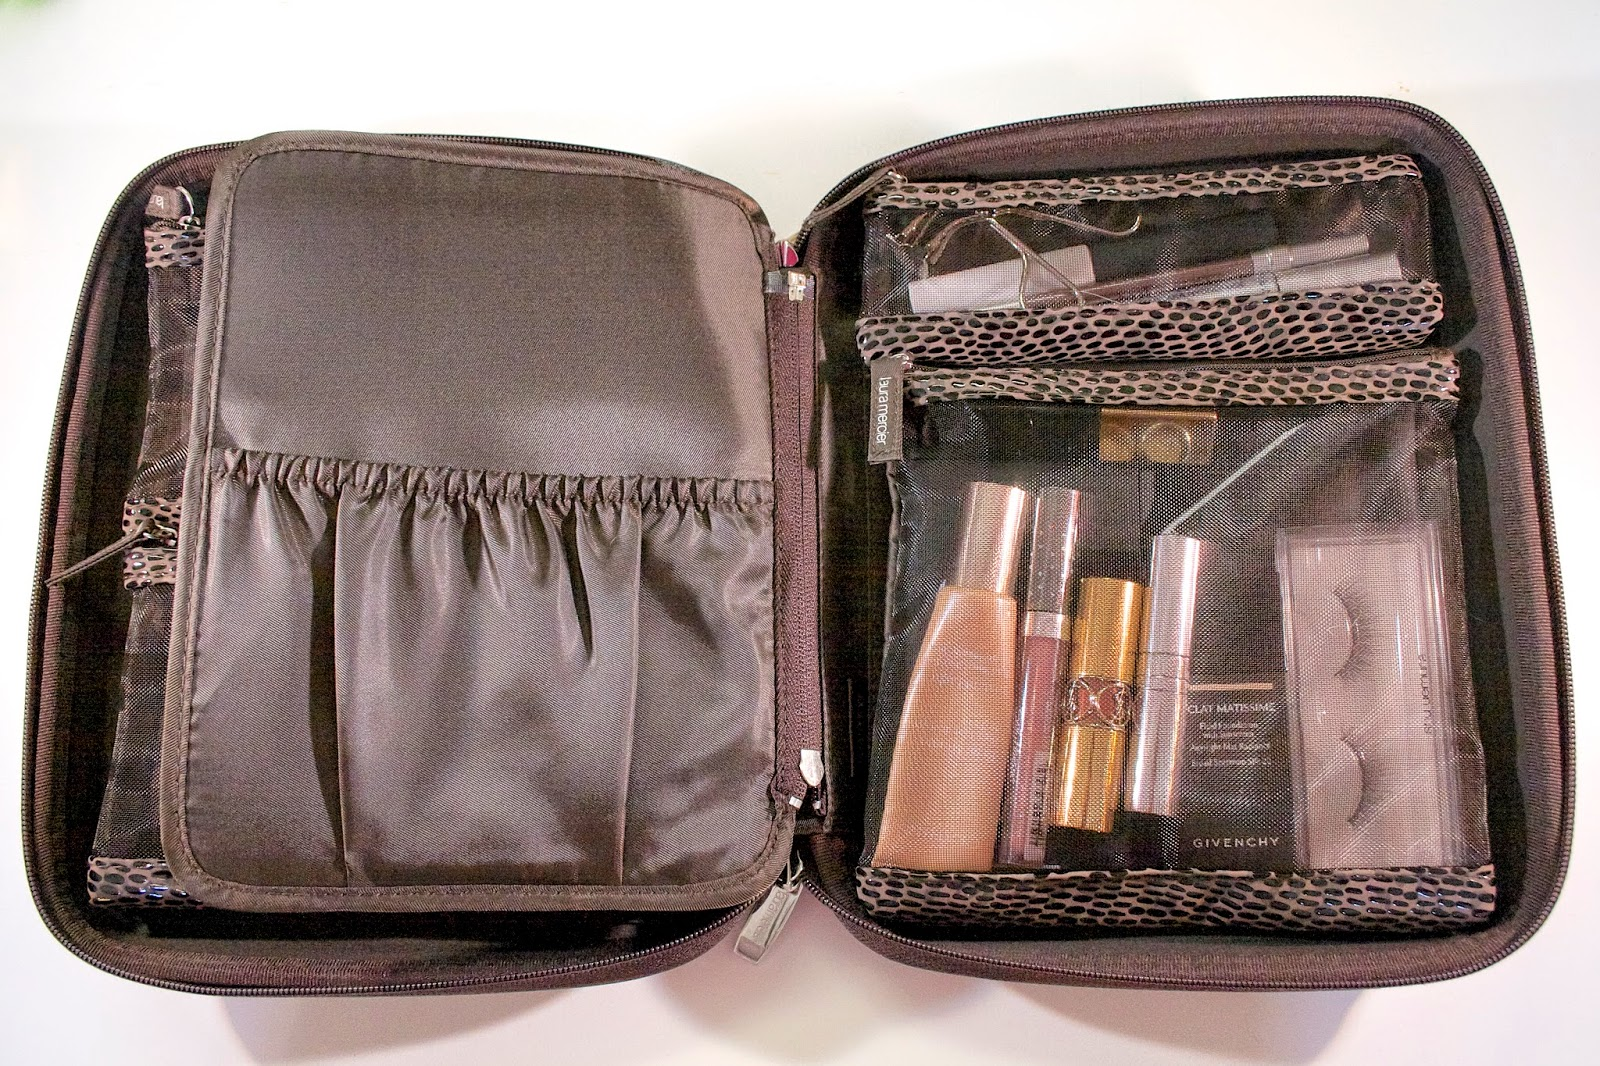 For Years I Ve Been Searching A Way To Organize My Makeup Travel Despise The Idea Of Massive Bag Where Products Are Allowed Just